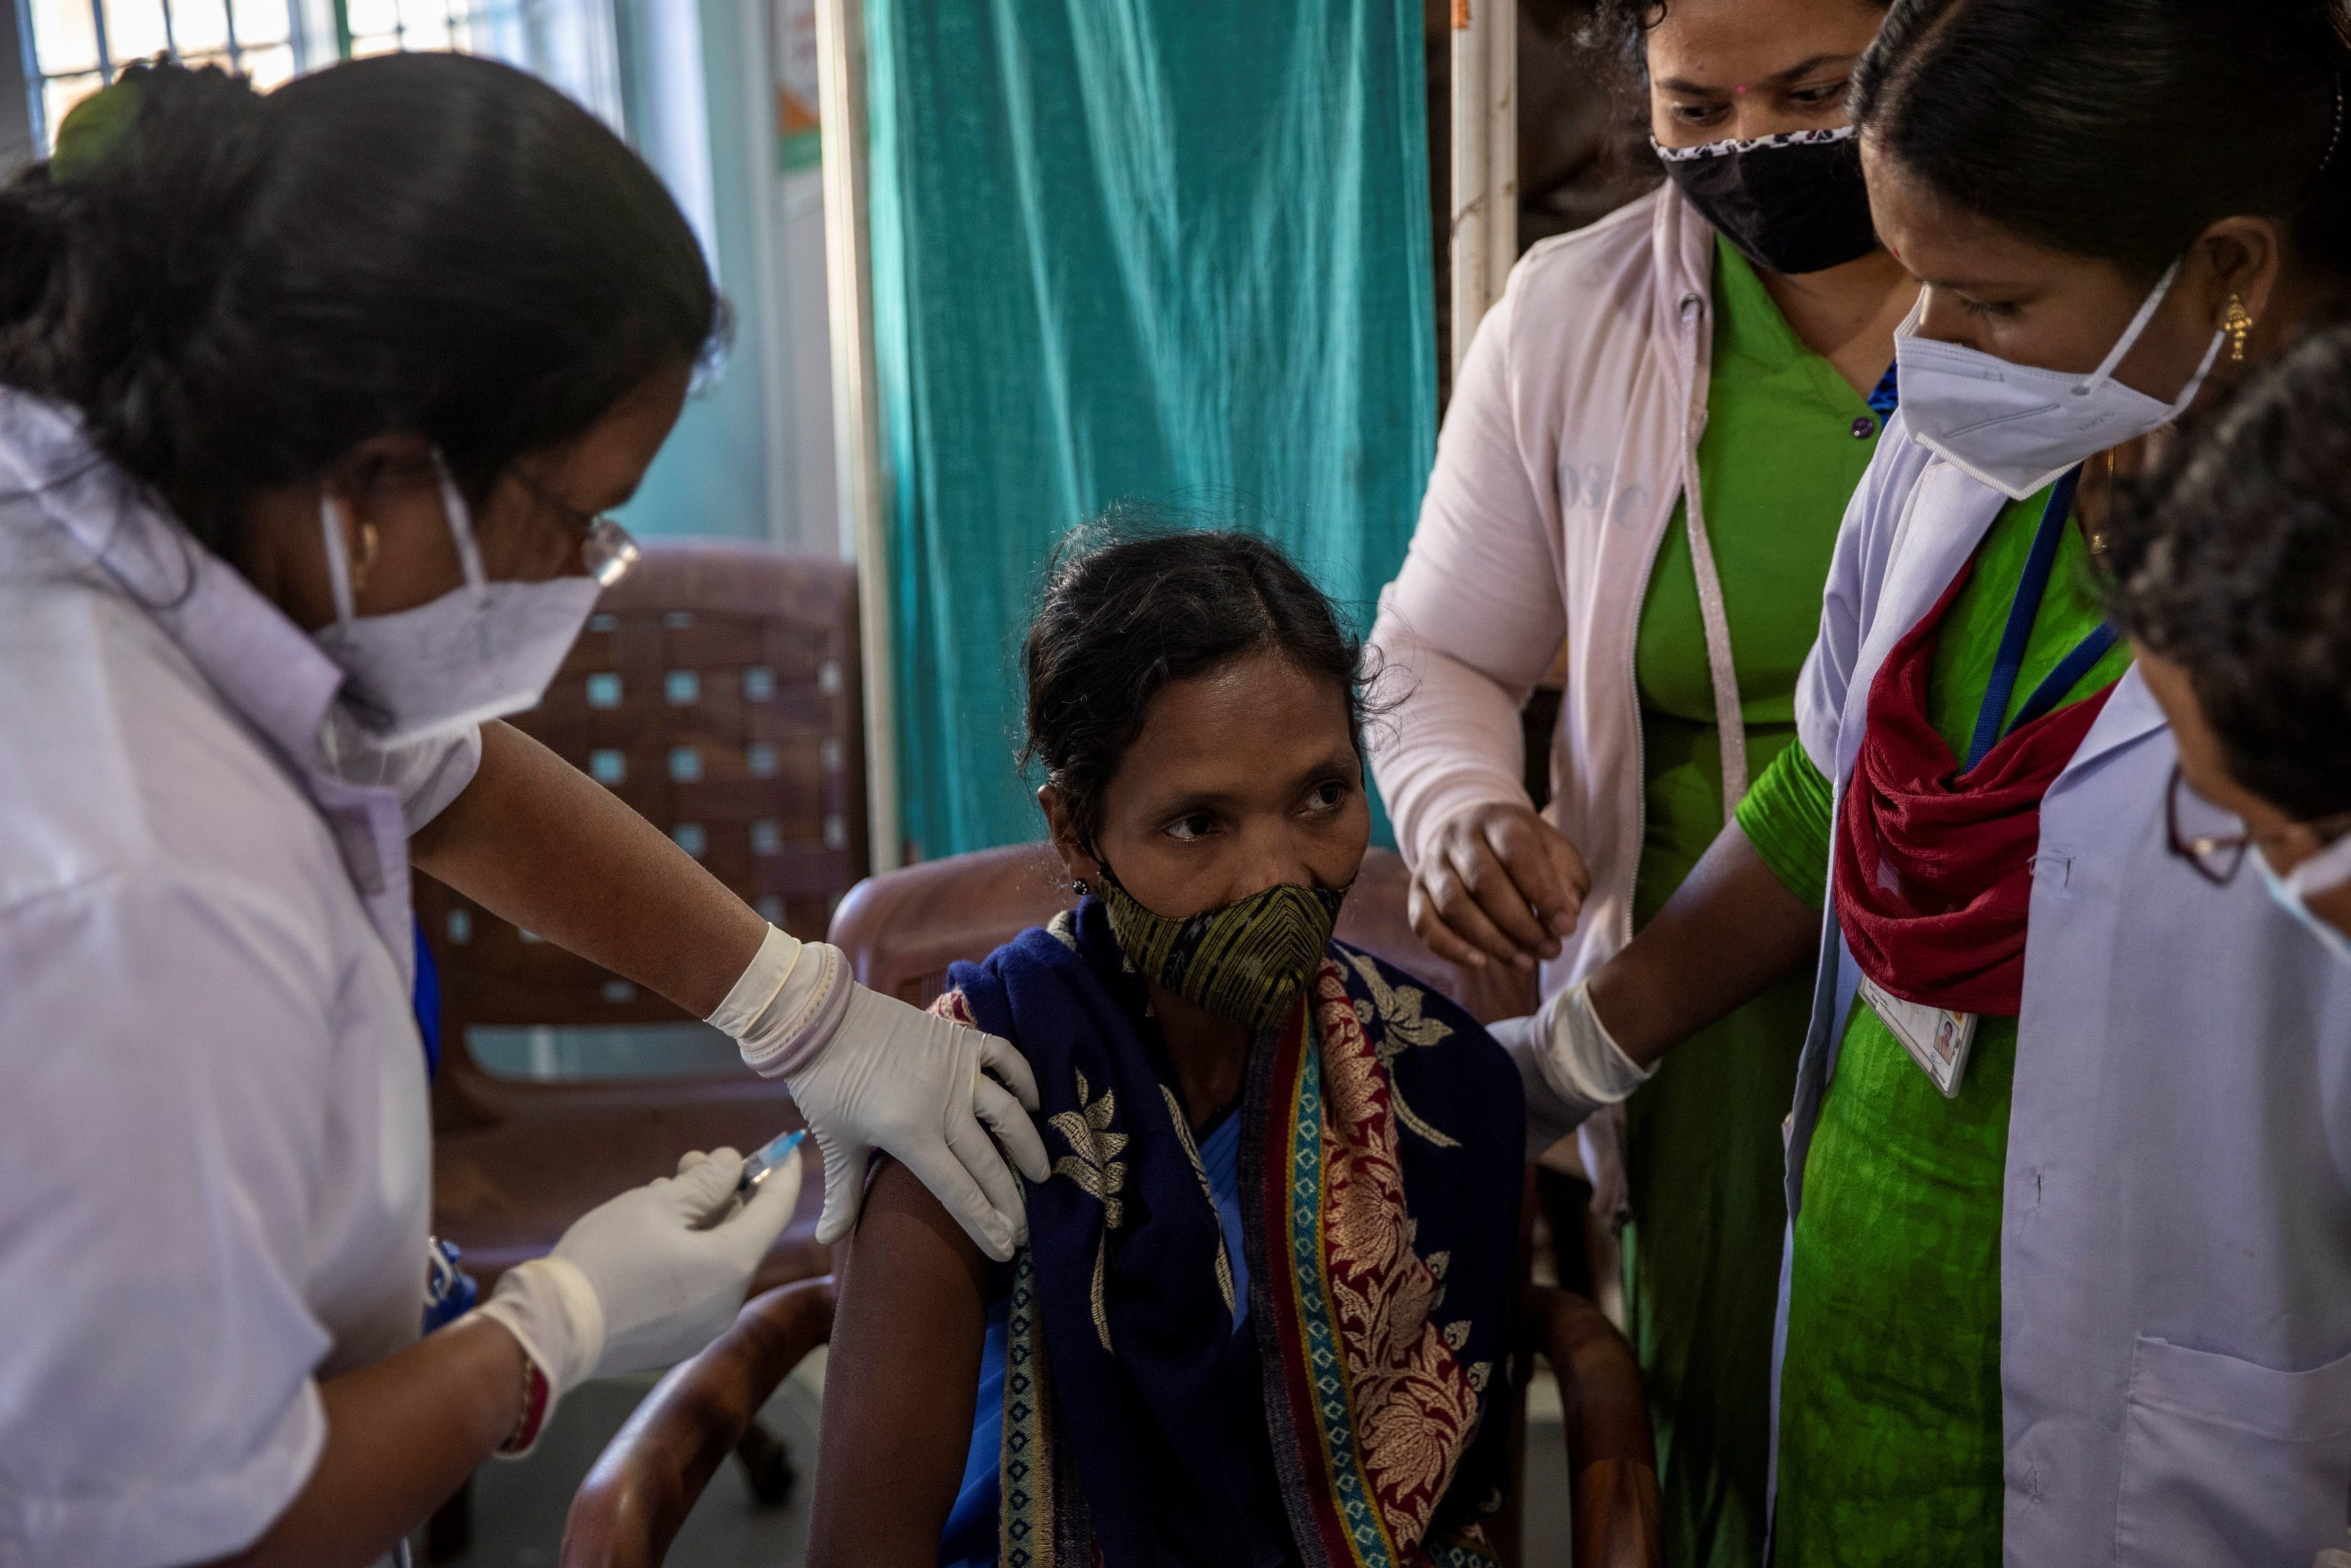 """Reena Jani, 34, a health worker, receives the vaccine developed by Oxford/AstraZeneca at Mathalput Community Health Centre, during the coronavirus disease (COVID-19) pandemic, in Koraput, India, January 16, 2021. Jani's name was on a list of 100 health workers at Mathalput Community Health Centre, making her one of the first Indians to be inoculated against COVID-19 earlier this month, as the country rolls out a vaccination programme the government calls the world's biggest. But she had heard rumours of serious side effects and worried about what would happen were she to get ill. """"I was frightened because of my son and daughters. If something happens to me, what will they do?"""" Jani said. REUTERS/Danish Siddiqui     SEARCH """"SIDDIQUI OXFORD/ASTRAZENECA"""" FOR THIS STORY. SEARCH """"WIDER IMAGE"""" FOR ALL STORIES. TPX IMAGES OF THE DAY. - RC2SEL9ODK0Y"""